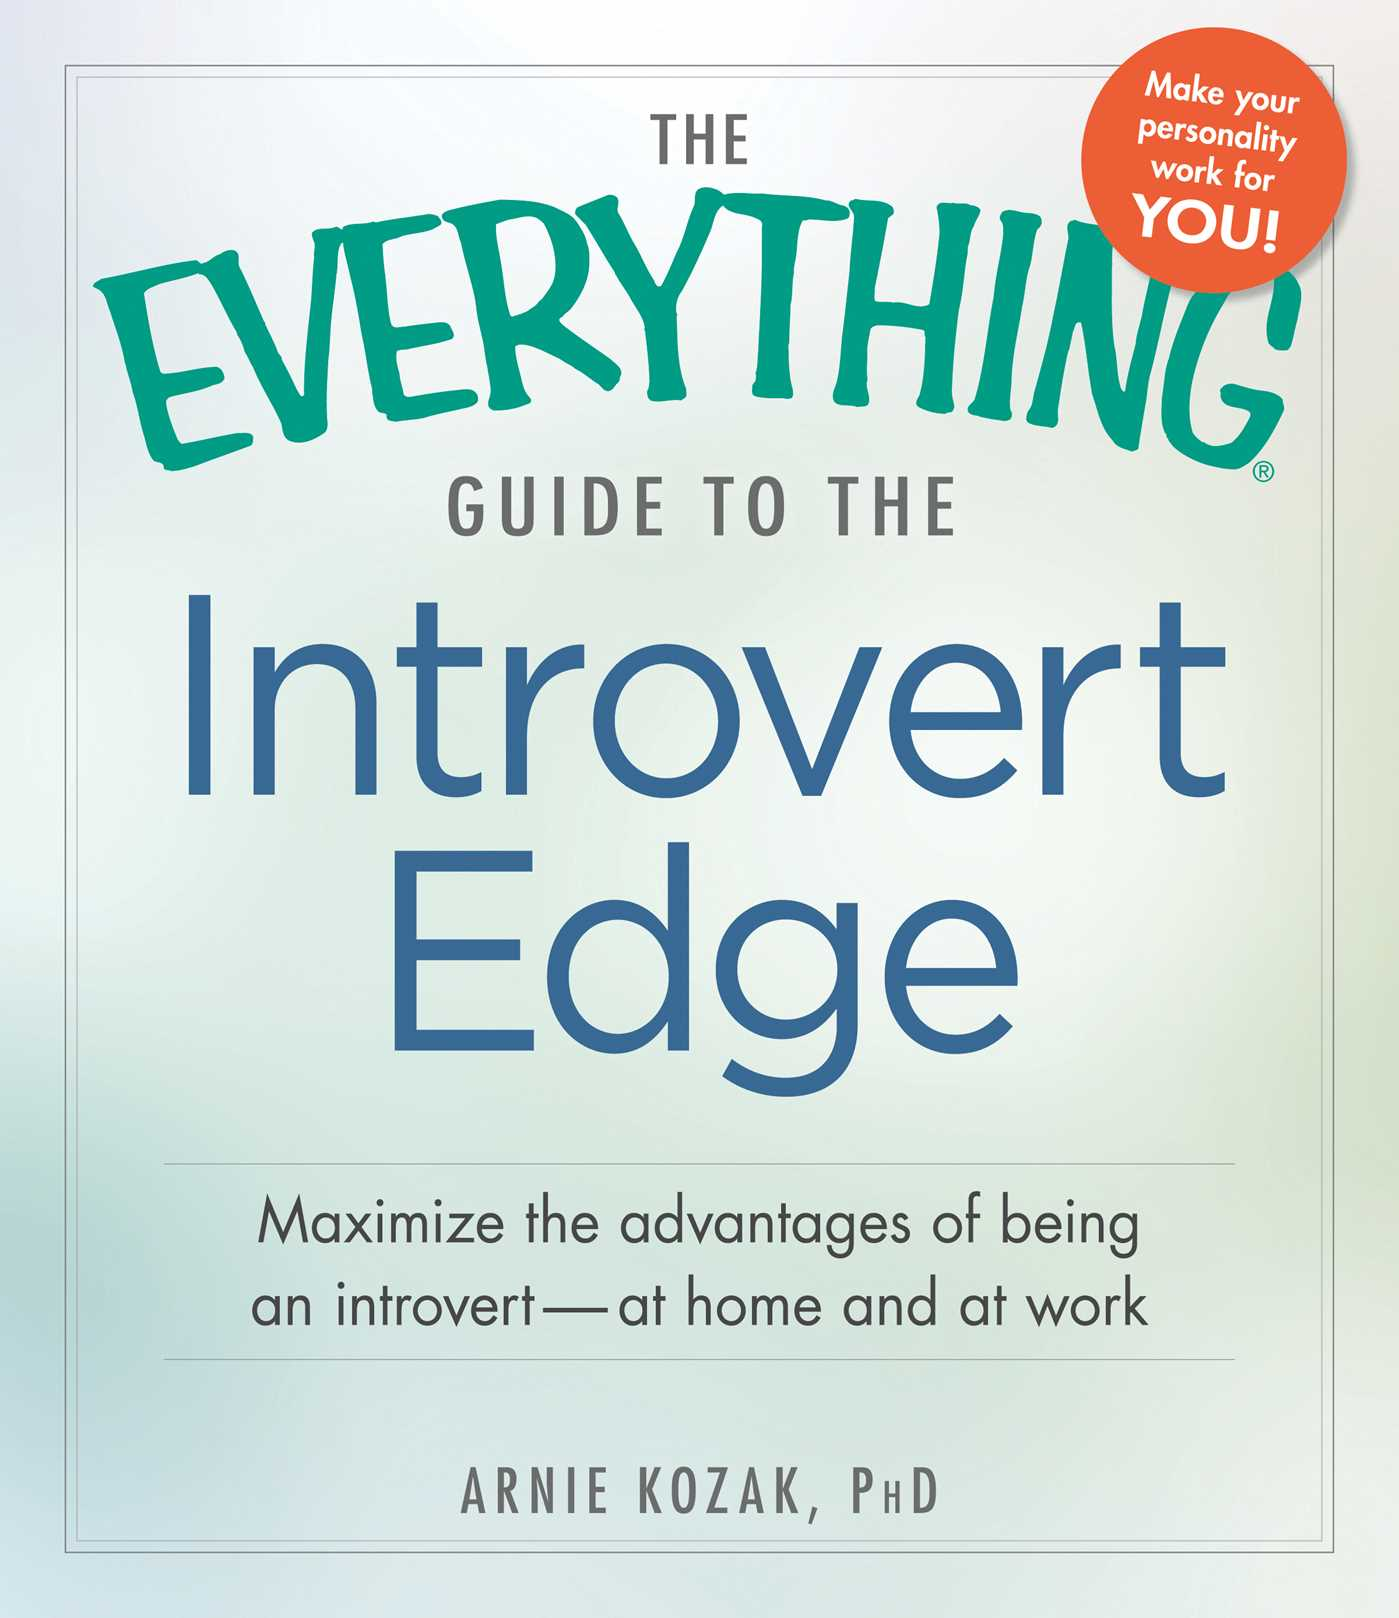 The everything guide to the introvert edge 9781440568169 hr